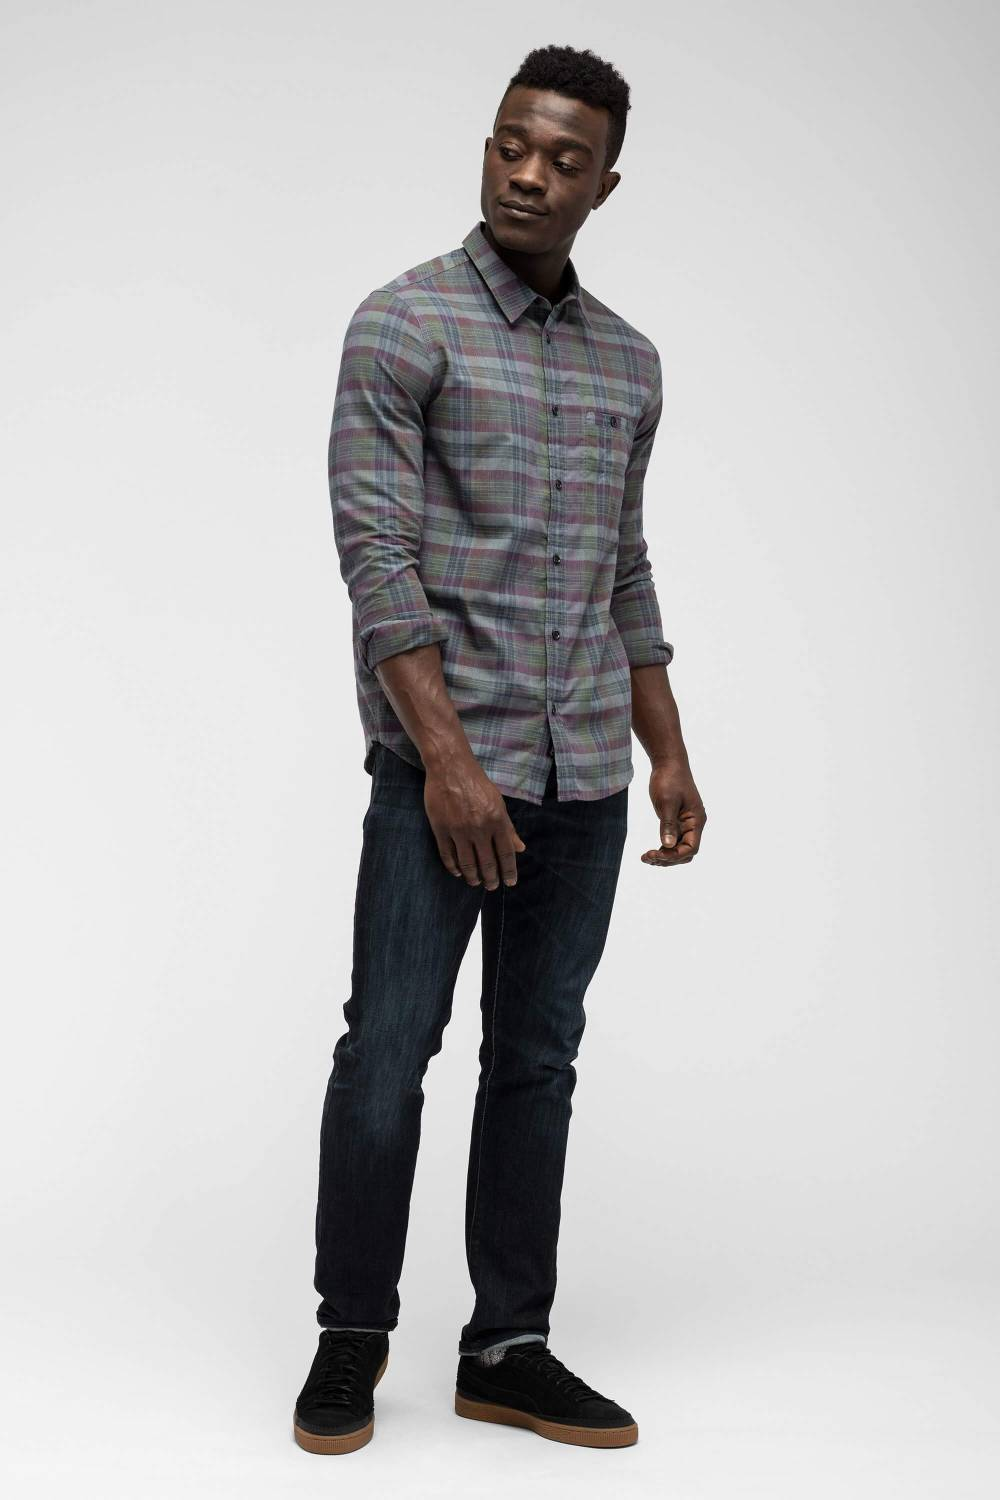 nau ethical fashion brand men